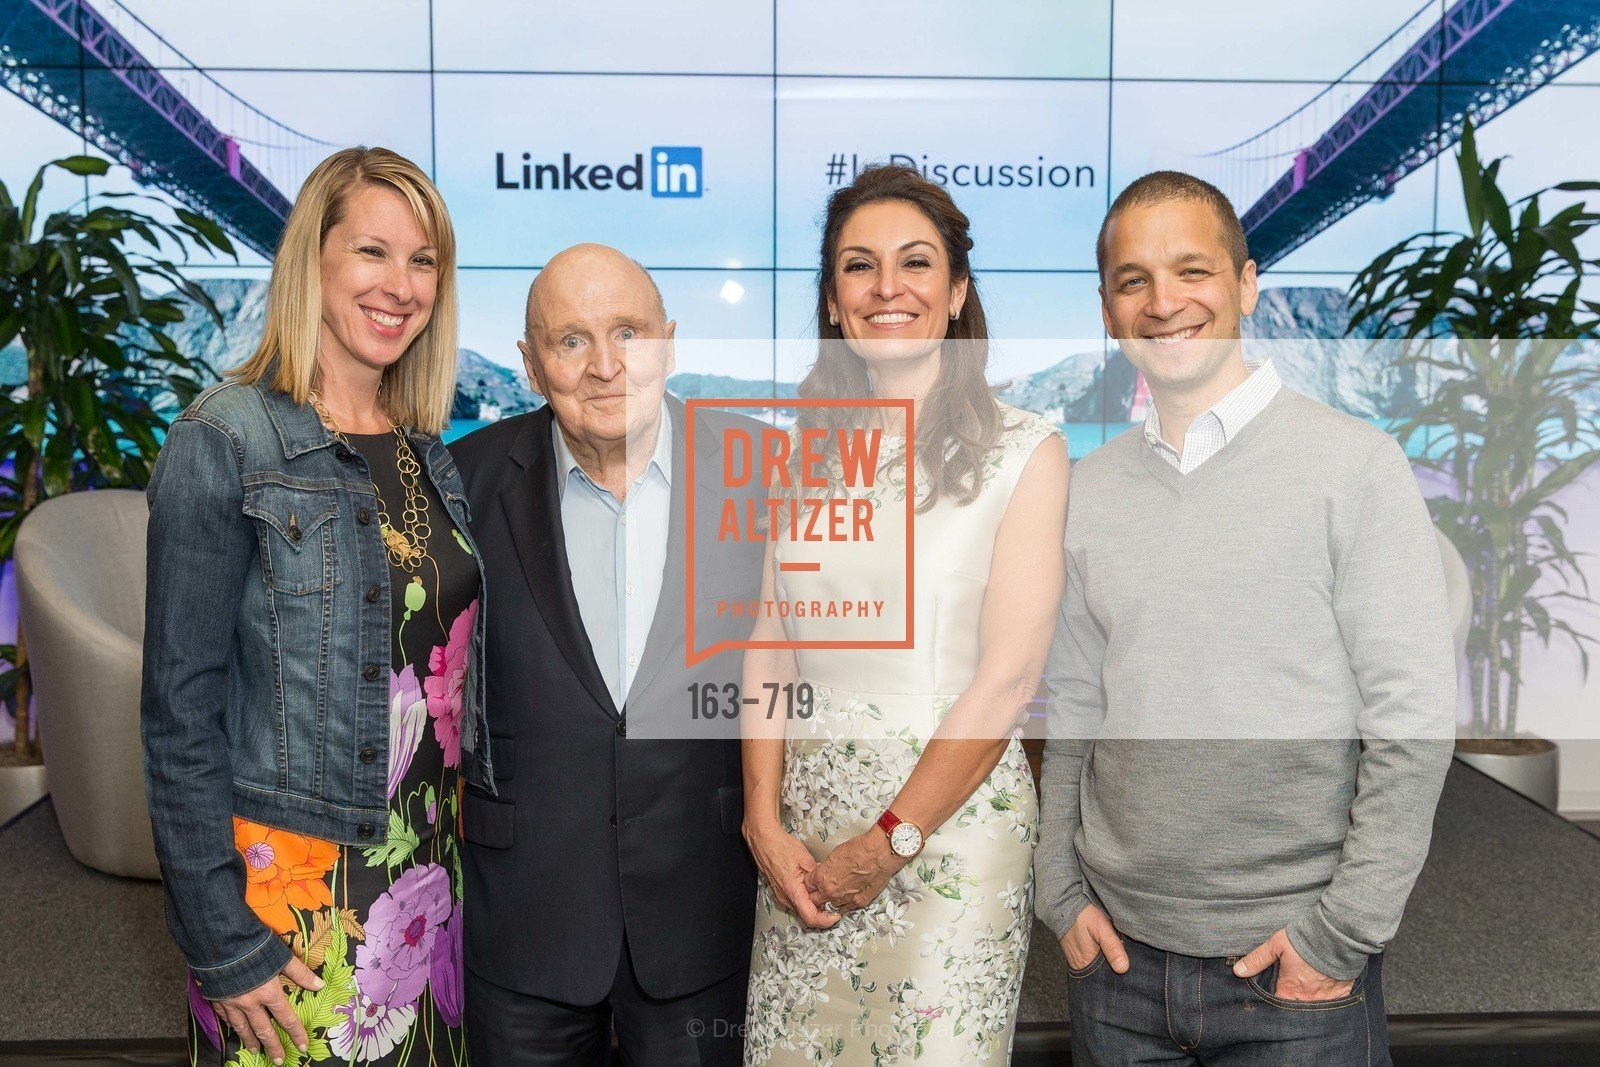 Shannon Stubo, Jack Welch, Suzy Welch, Dan Roth, THE LINKEDIN Discussion Series featuring Jack and Suzy Welch with LinkedIn Executive Editor Dan Roth, US, May 11th, 2015,Drew Altizer, Drew Altizer Photography, full-service agency, private events, San Francisco photographer, photographer california